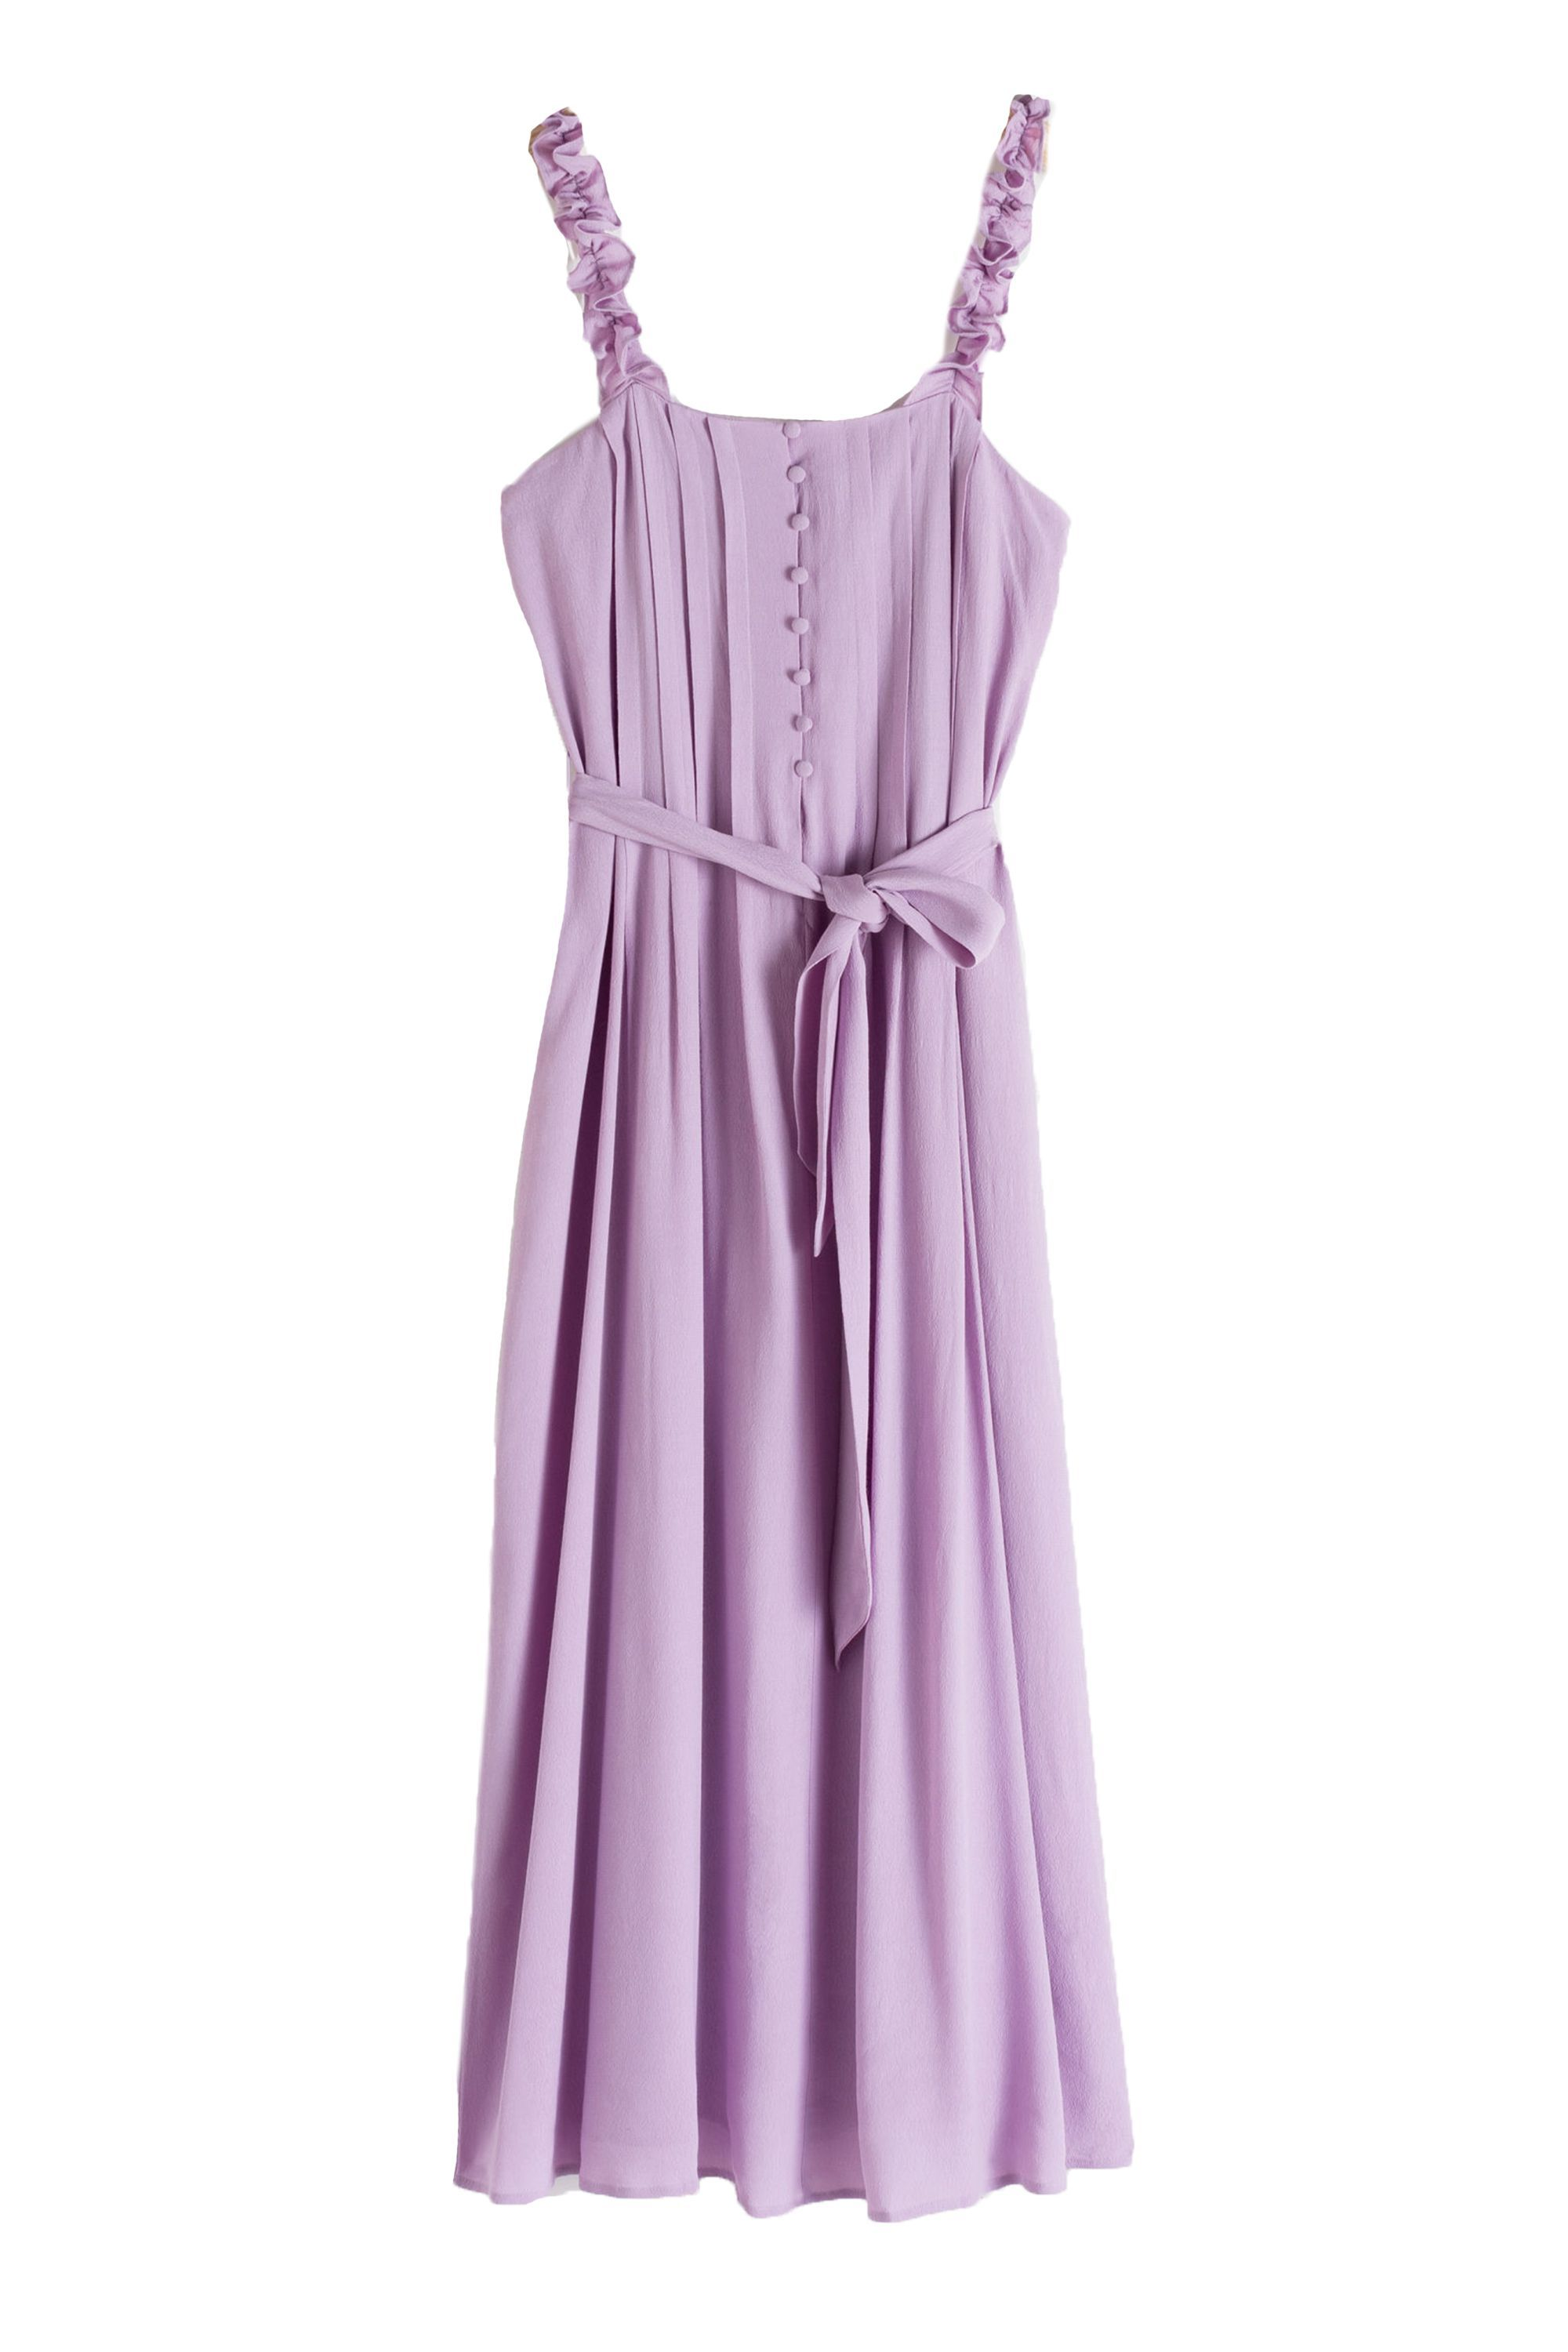 b67dd6dfd4d 15 Bridesmaids Dresses Under  300 You Won t Totally Regret